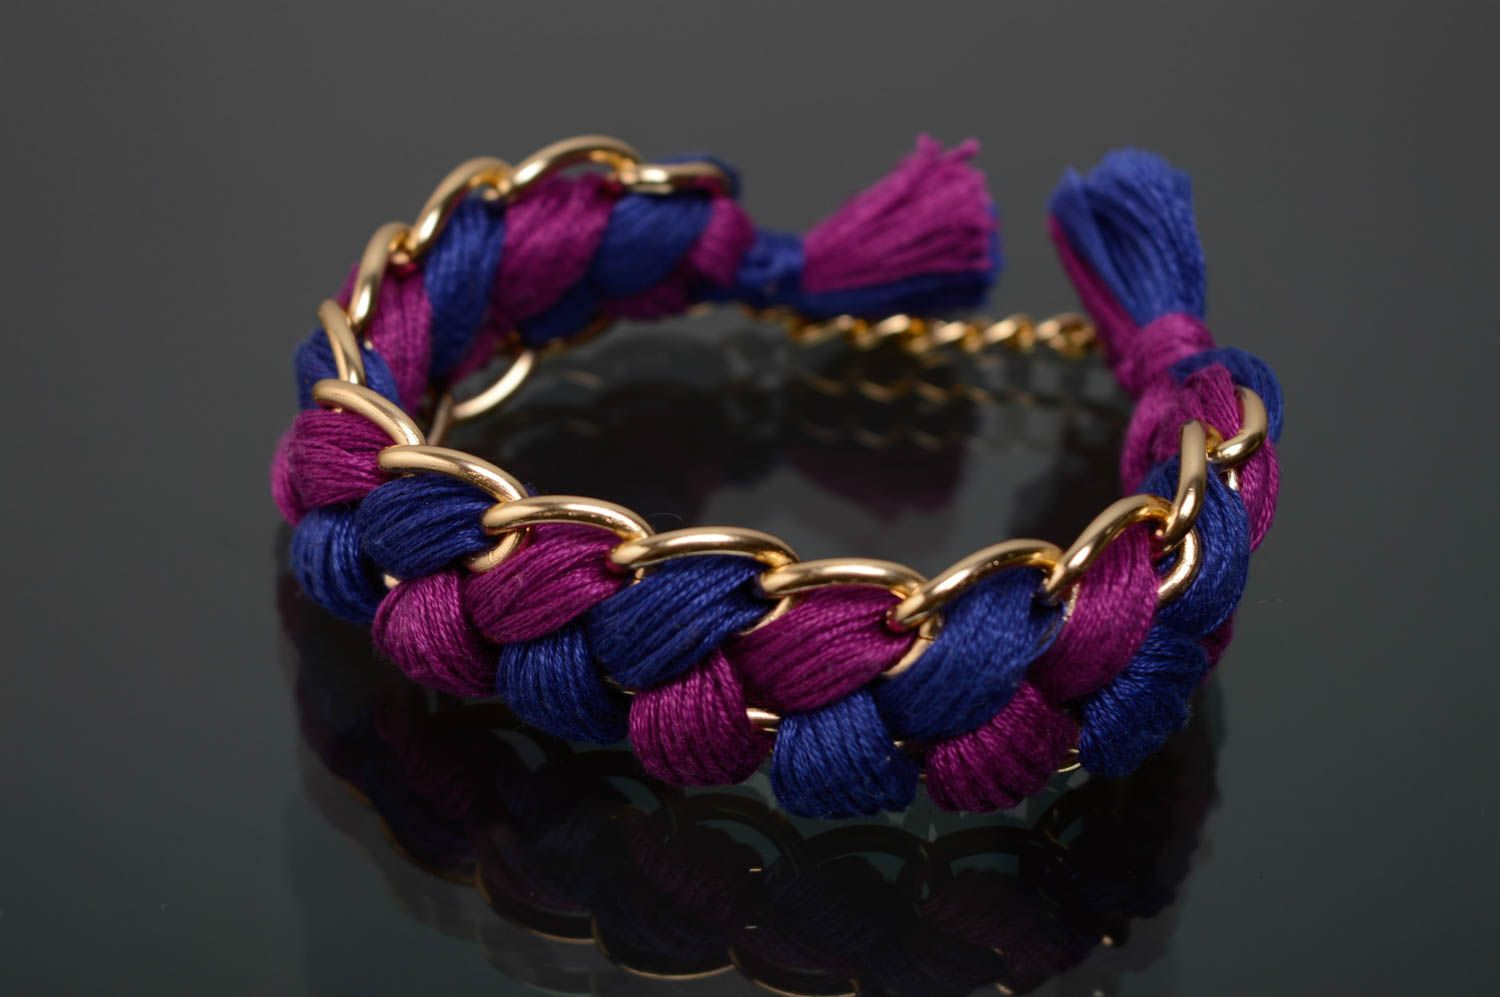 Woven moulin thread necklace with chain photo 1